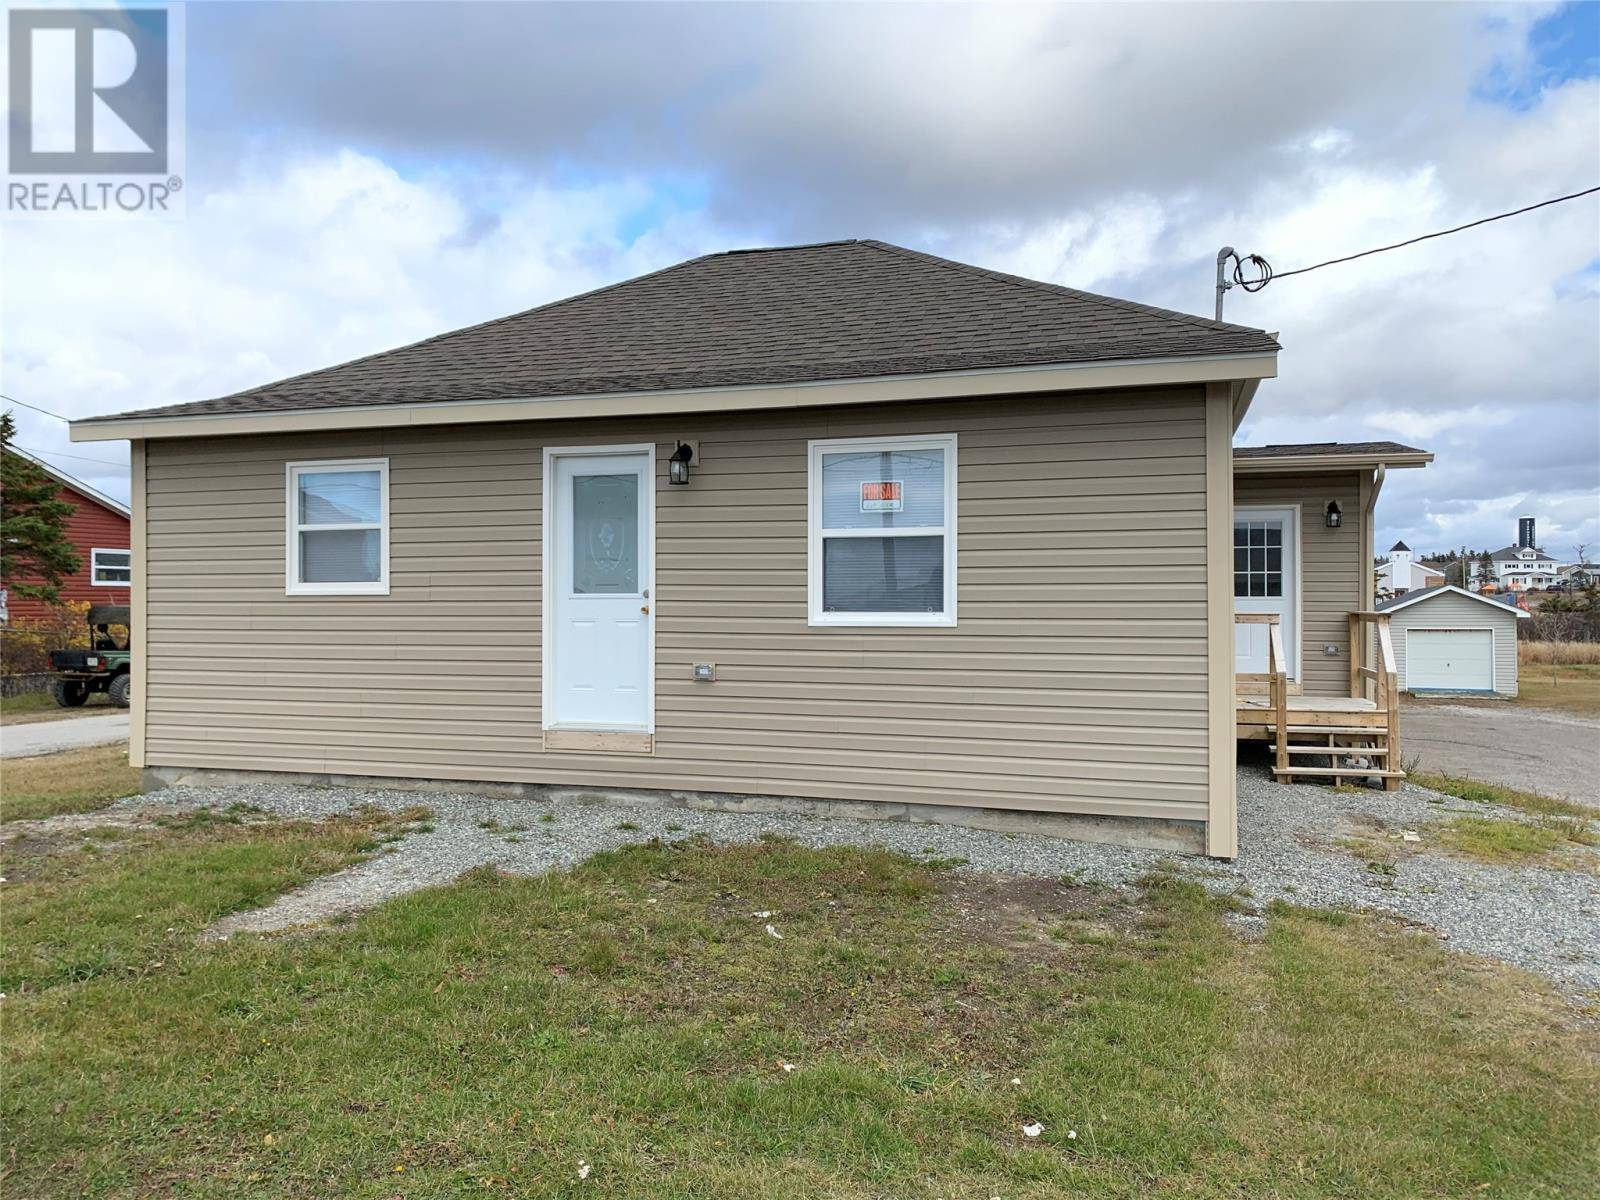 House for sale at 40 Main St Stephenville Crossing Newfoundland - MLS: 1207589